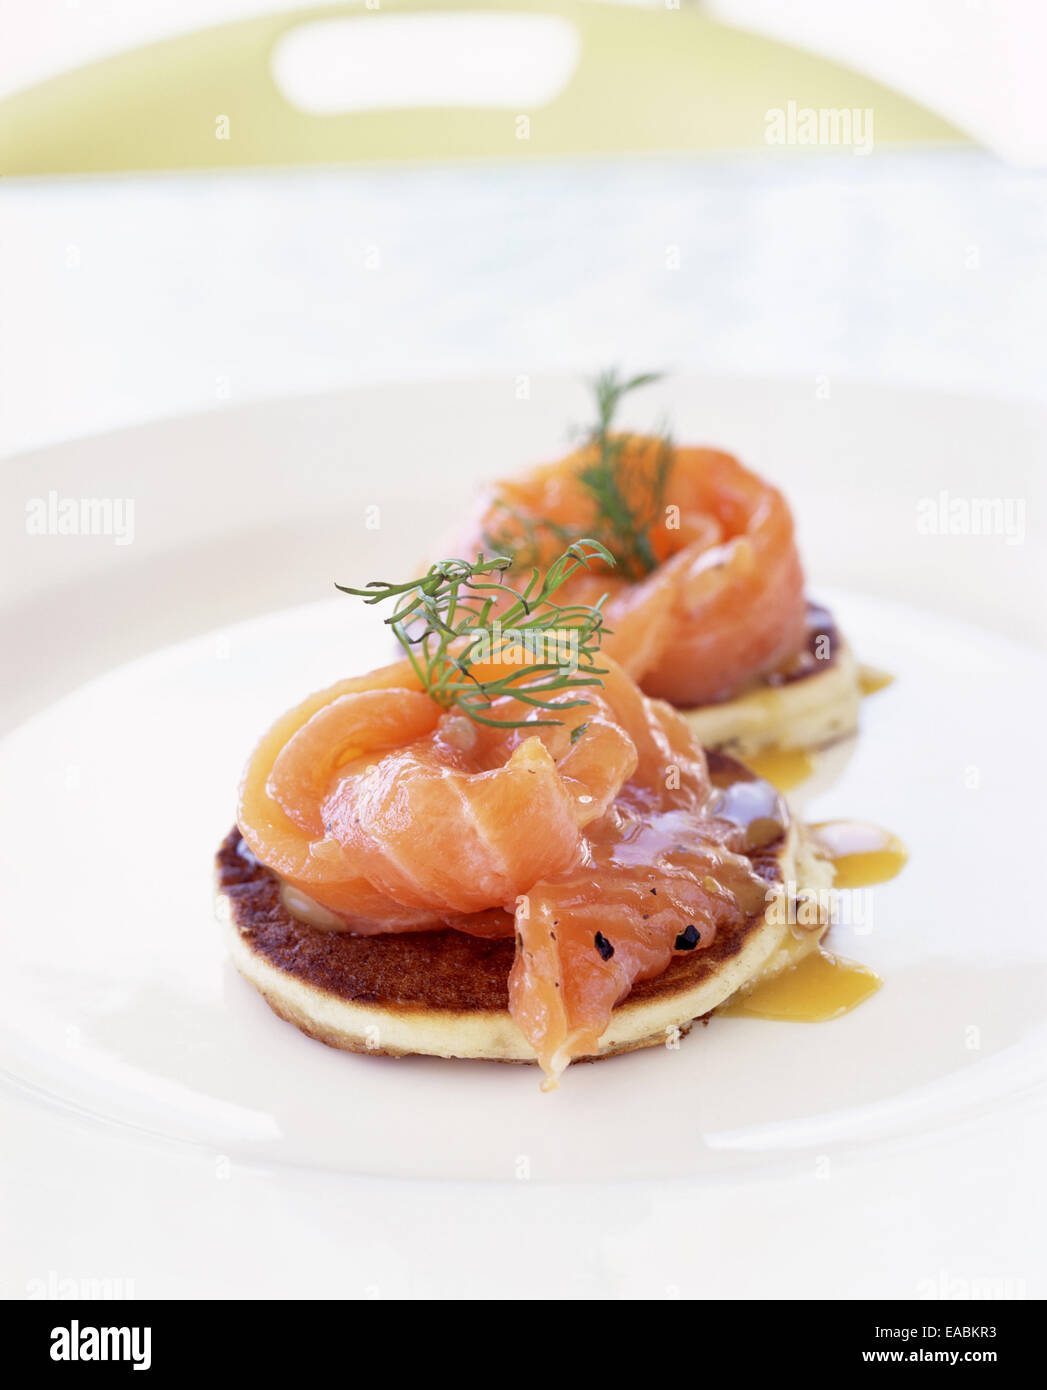 Blini with Gravlax - Stock Image